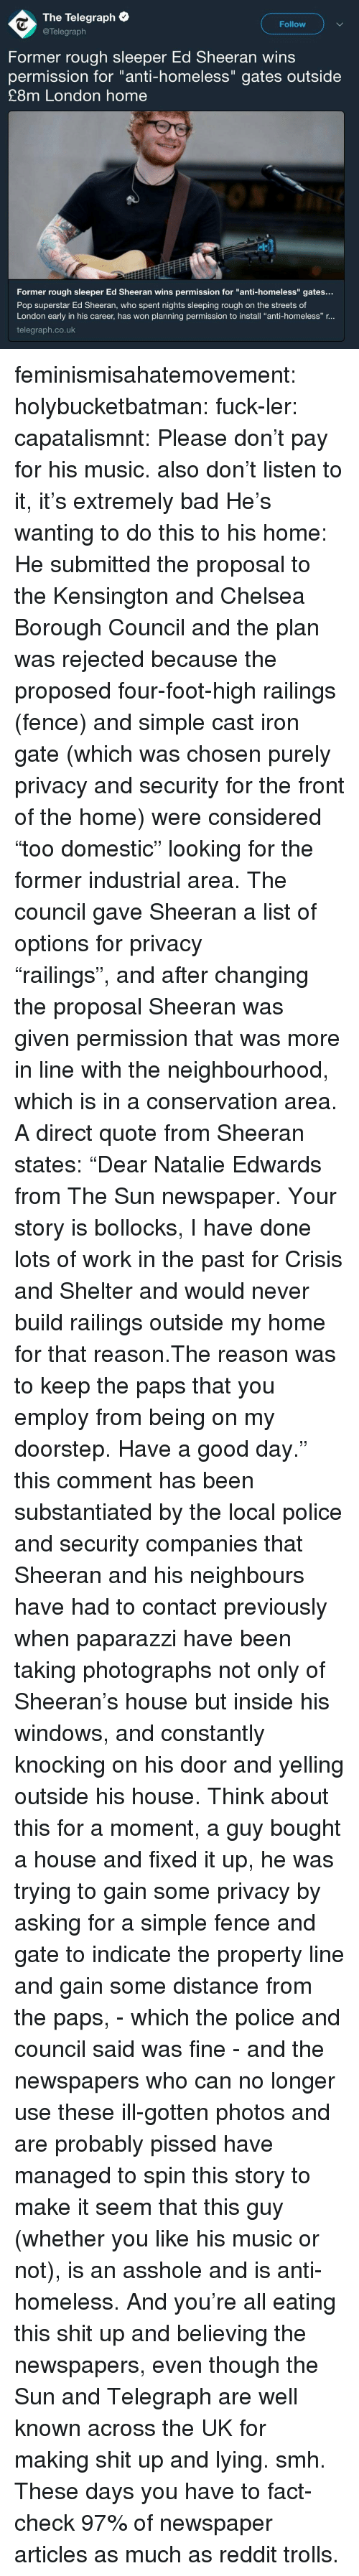 """Bad, Chelsea, and Homeless: The Telegraph  @Telegraph  Follow  Former rough sleeper Ed Sheeran wins  permission for """"anti-homeless"""" gates outside  £8m London home  Former rough sleeper Ed Sheeran wins permission for """"anti-homeless"""" gates..  Pop superstar Ed Sheeran, who spent nights sleeping rough on the streets of  London early in his career, has won planning permission to install """"anti-homeless"""" r...  telegraph.co.uk feminismisahatemovement:  holybucketbatman:  fuck-ler:  capatalismnt: Please don't pay for his music.  also don't listen to it, it's extremely bad  He's wanting to do this to his home: He submitted the proposal to the Kensington and Chelsea Borough Council and the plan was rejected because the proposed four-foot-high railings (fence) and simple cast iron gate (which was chosen purely privacy and security for the front of the home) were considered """"too domestic"""" looking for the former industrial area. The council gave Sheeran a list of options for privacy """"railings"""",and after changing the proposal Sheeran was given permission that was more in line with the neighbourhood, which is in a conservation area. A direct quote from Sheeran states: """"Dear Natalie Edwards from The Sun newspaper. Your story is bollocks, I have done lots of work in the past for Crisis and Shelter and would never build railings outside my home for that reason.The reason was to keep the paps that you employ from being on my doorstep. Have a good day."""" this comment has been substantiated by the local police and security companies that Sheeran and his neighbours have had to contact previously when paparazzihave been taking photographs not only of Sheeran's house but inside his windows, and constantly knocking on his door and yelling outside his house.Think about this for a moment, a guy bought a house and fixed it up, he was trying to gain some privacy by asking for a simple fence and gate to indicate the property line and gain some distance from the paps, - which the police and council"""